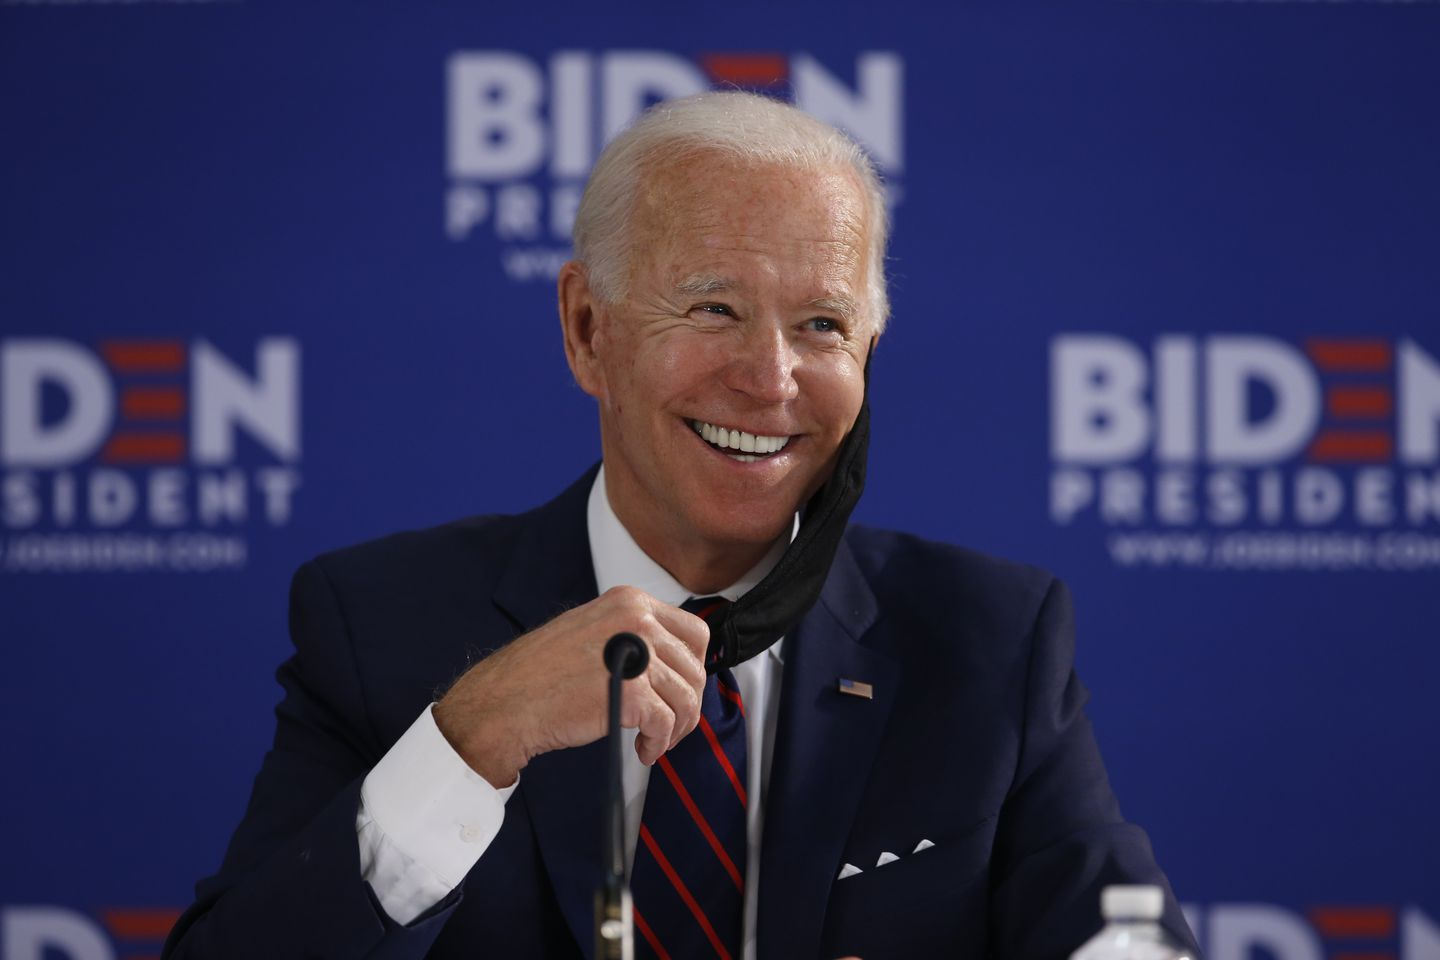 https://www.bostonglobe.com/2020/06/25/metro/why-biden-is-winning/